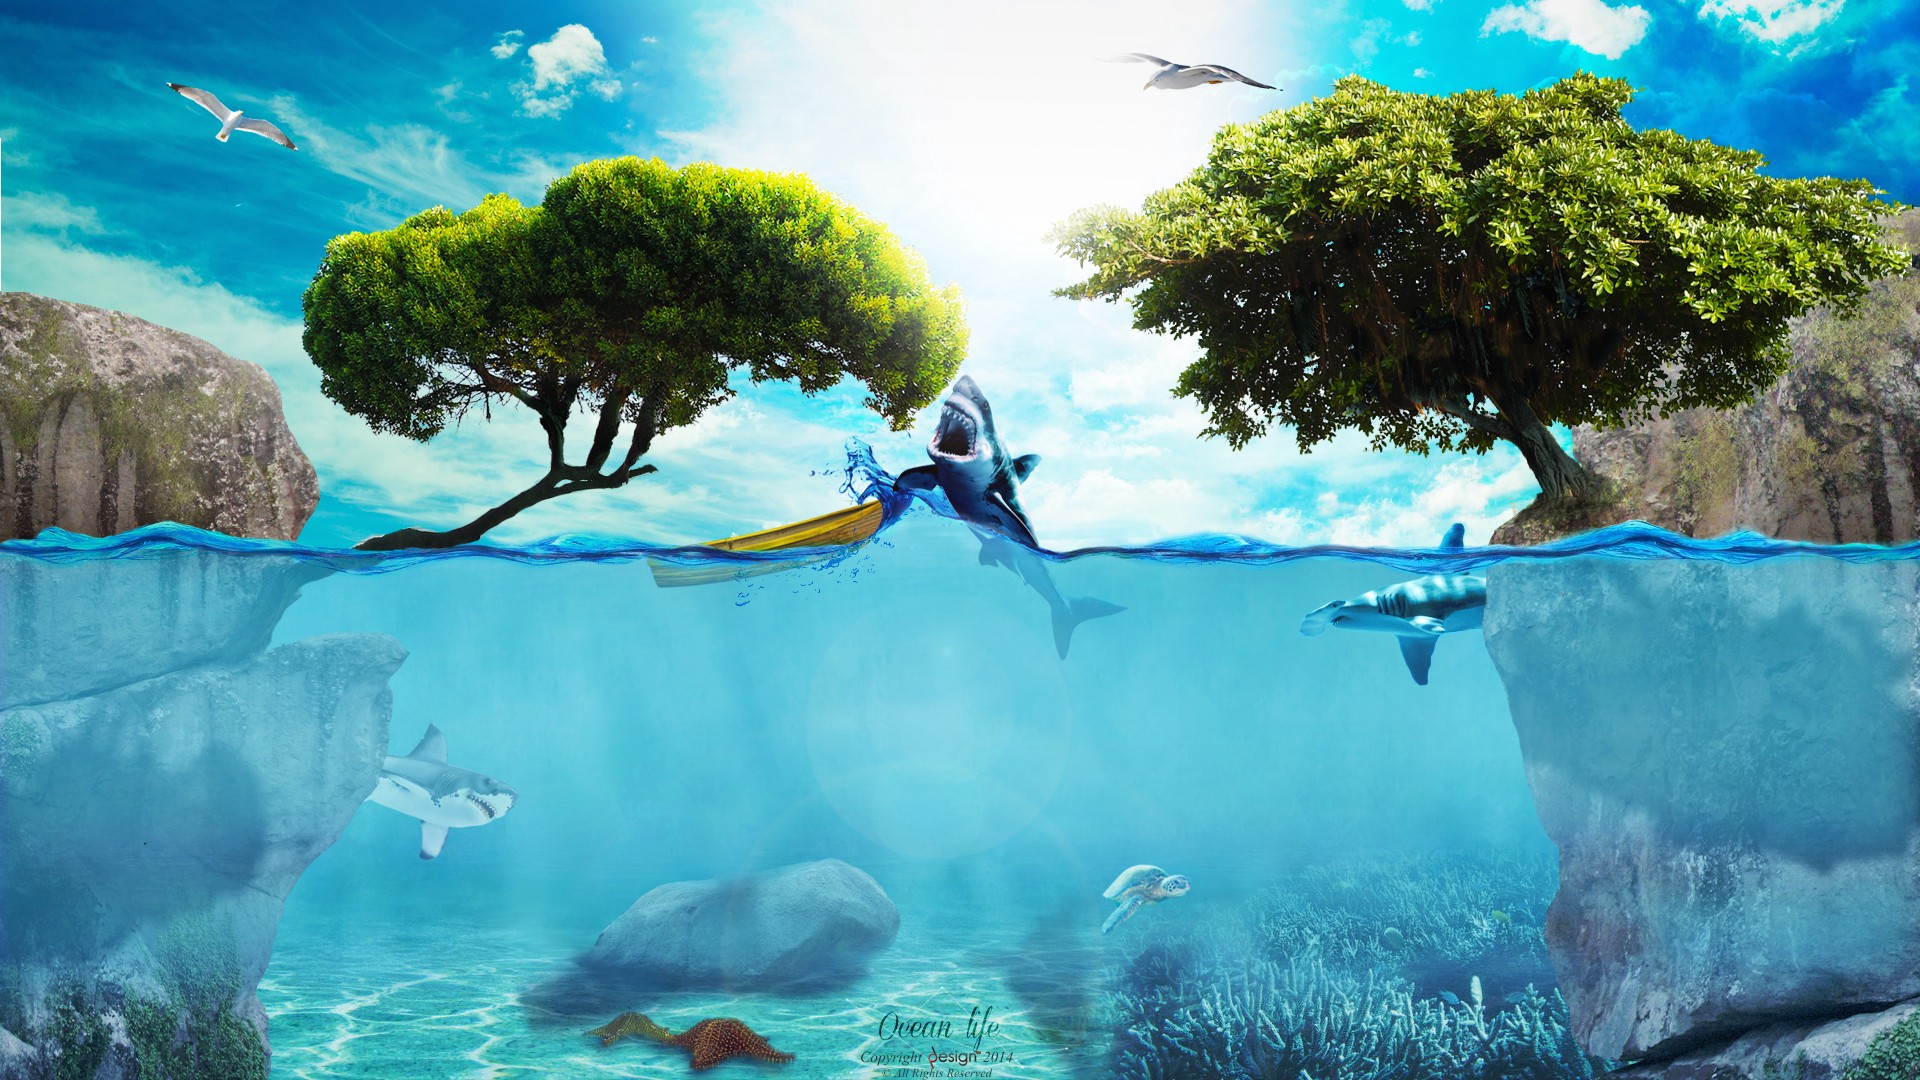 ocean life power and spirituality relationship from new viewpoint